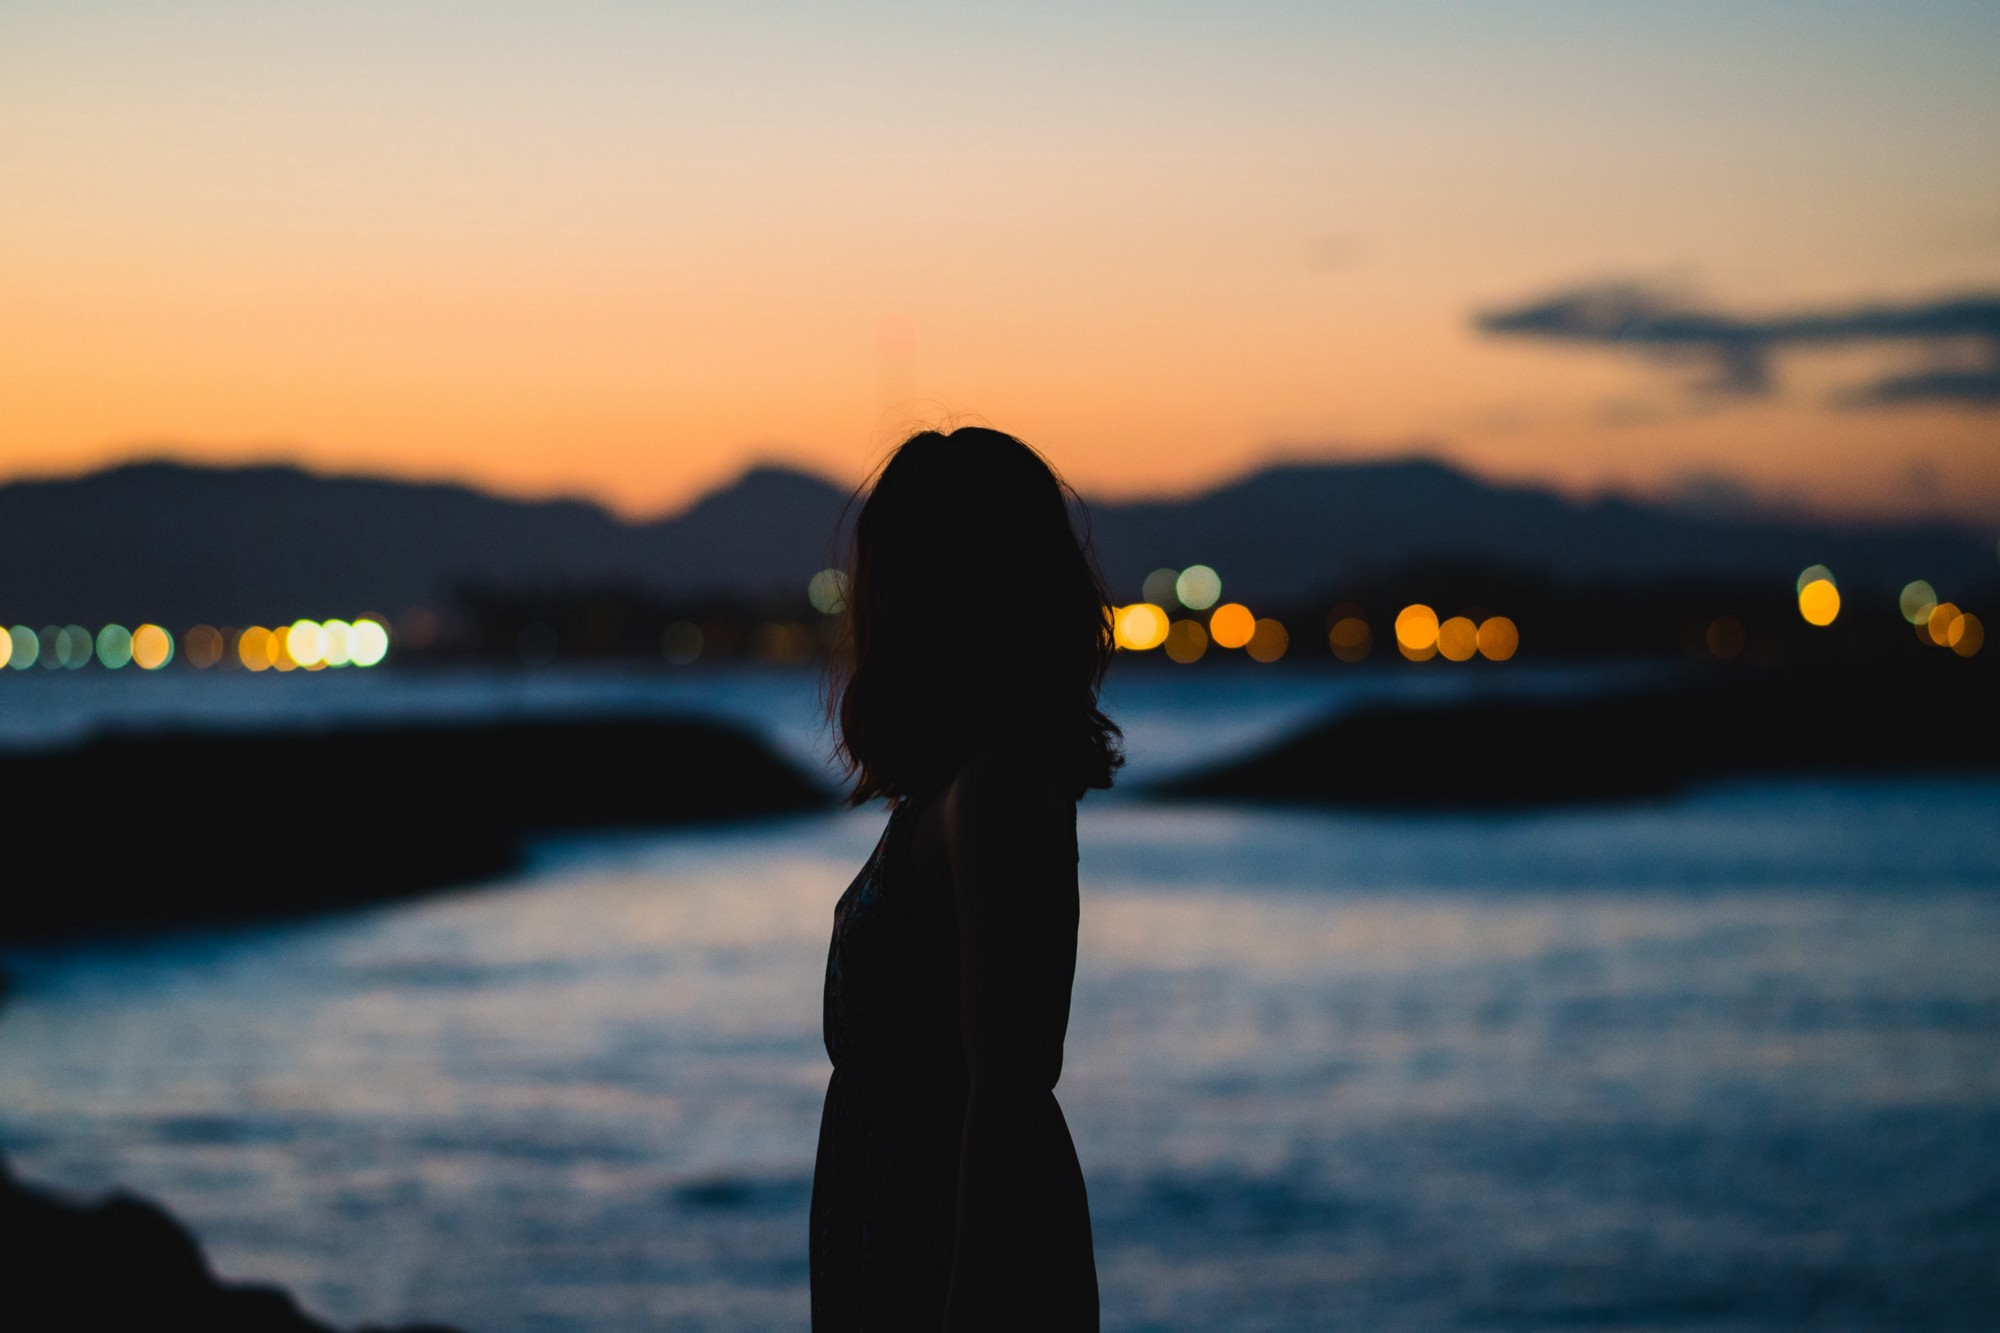 The silhouette of a woman looking out to sea in late evening.